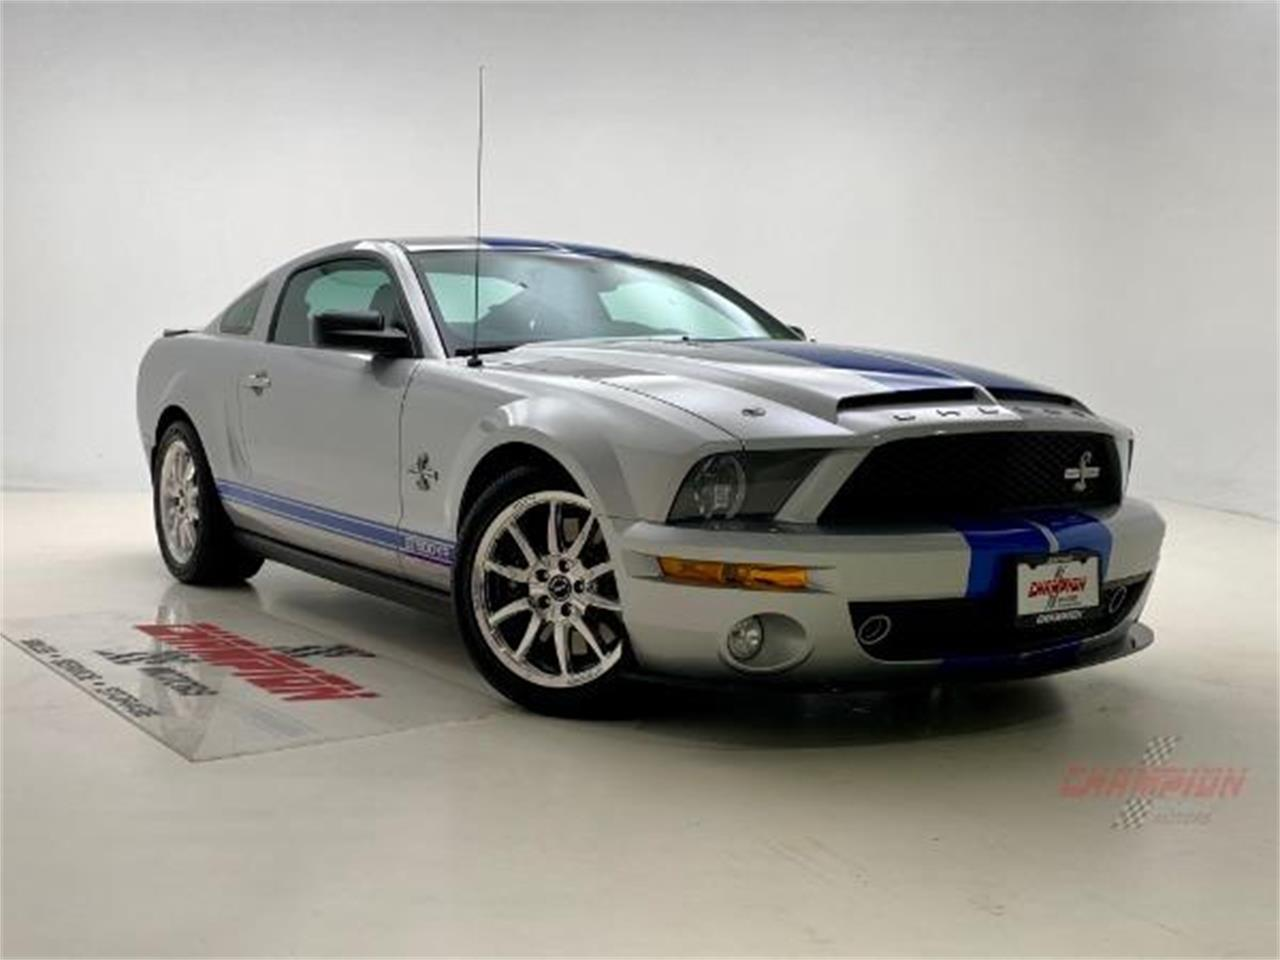 2009 Shelby Mustang for sale in Syosset, NY